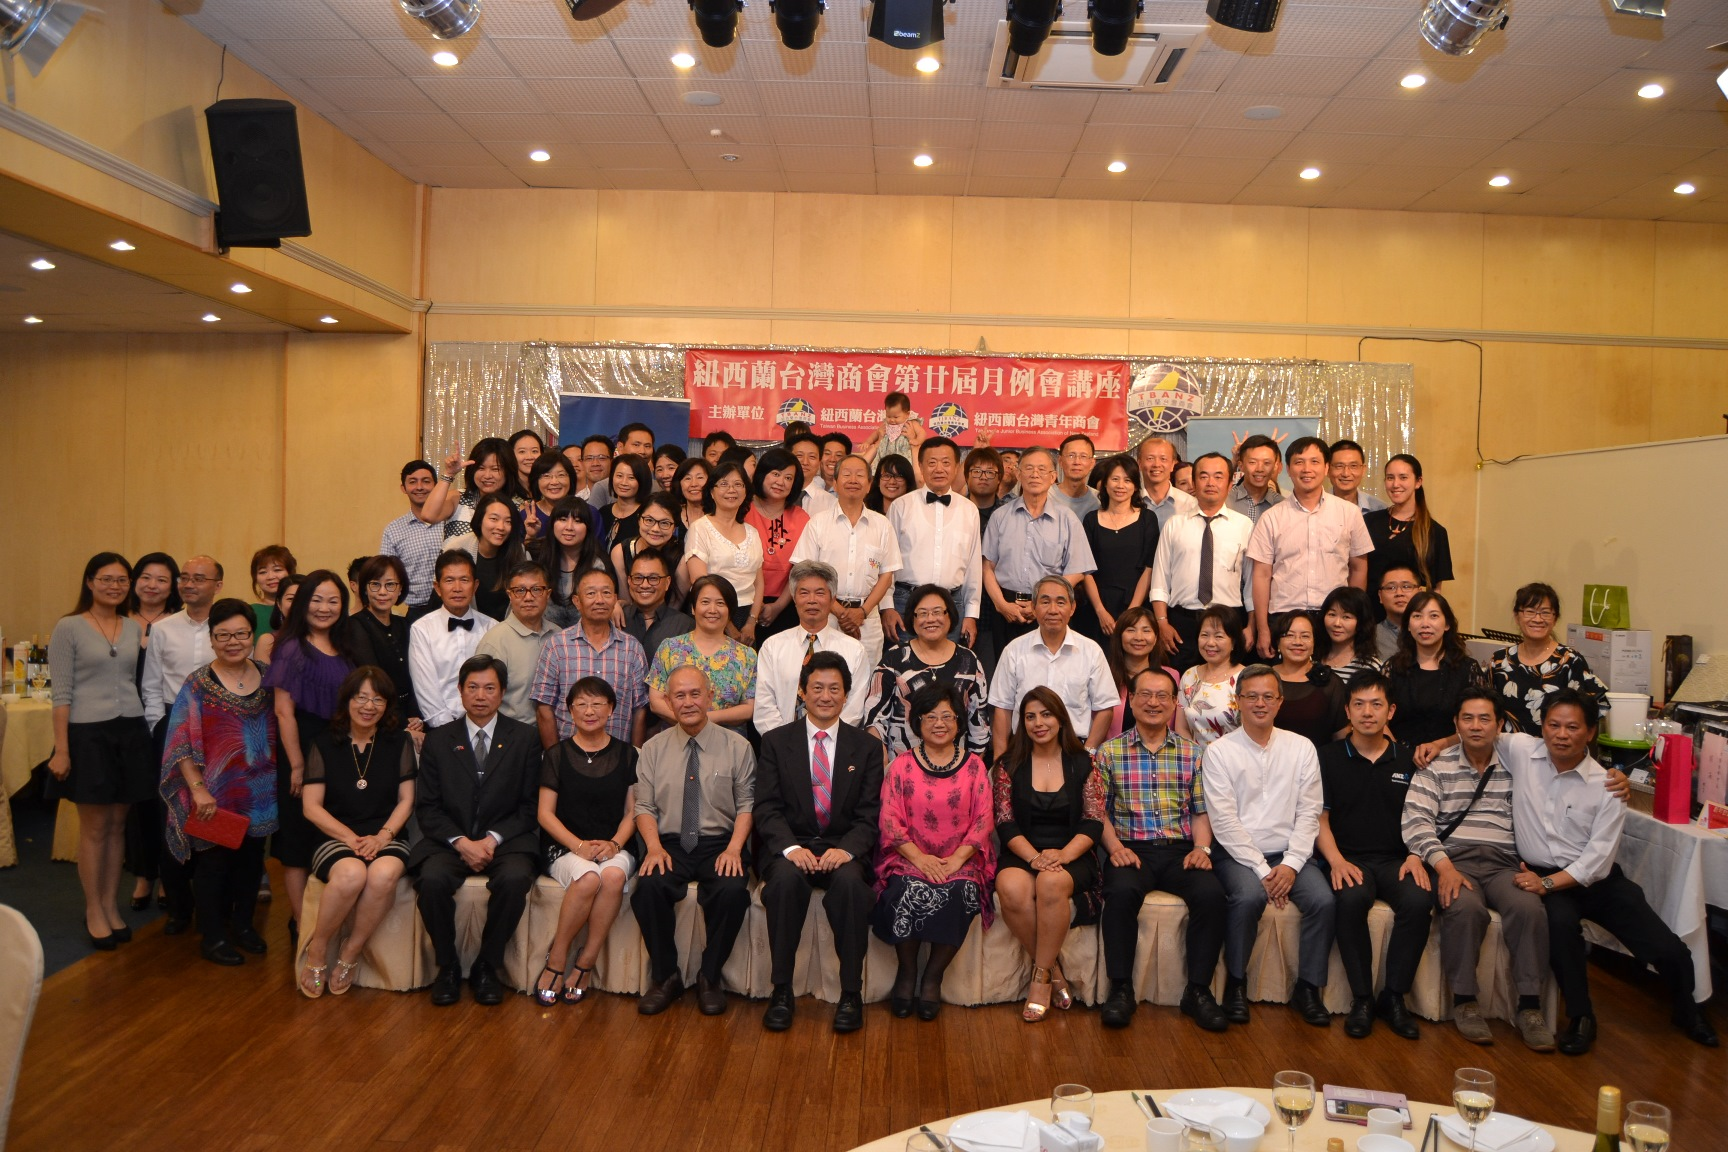 2018/04/03 Taiwanese Business Association and Junior Business Association of New Zealand hold year-end party and look forward to a prosperous Year of the Dog